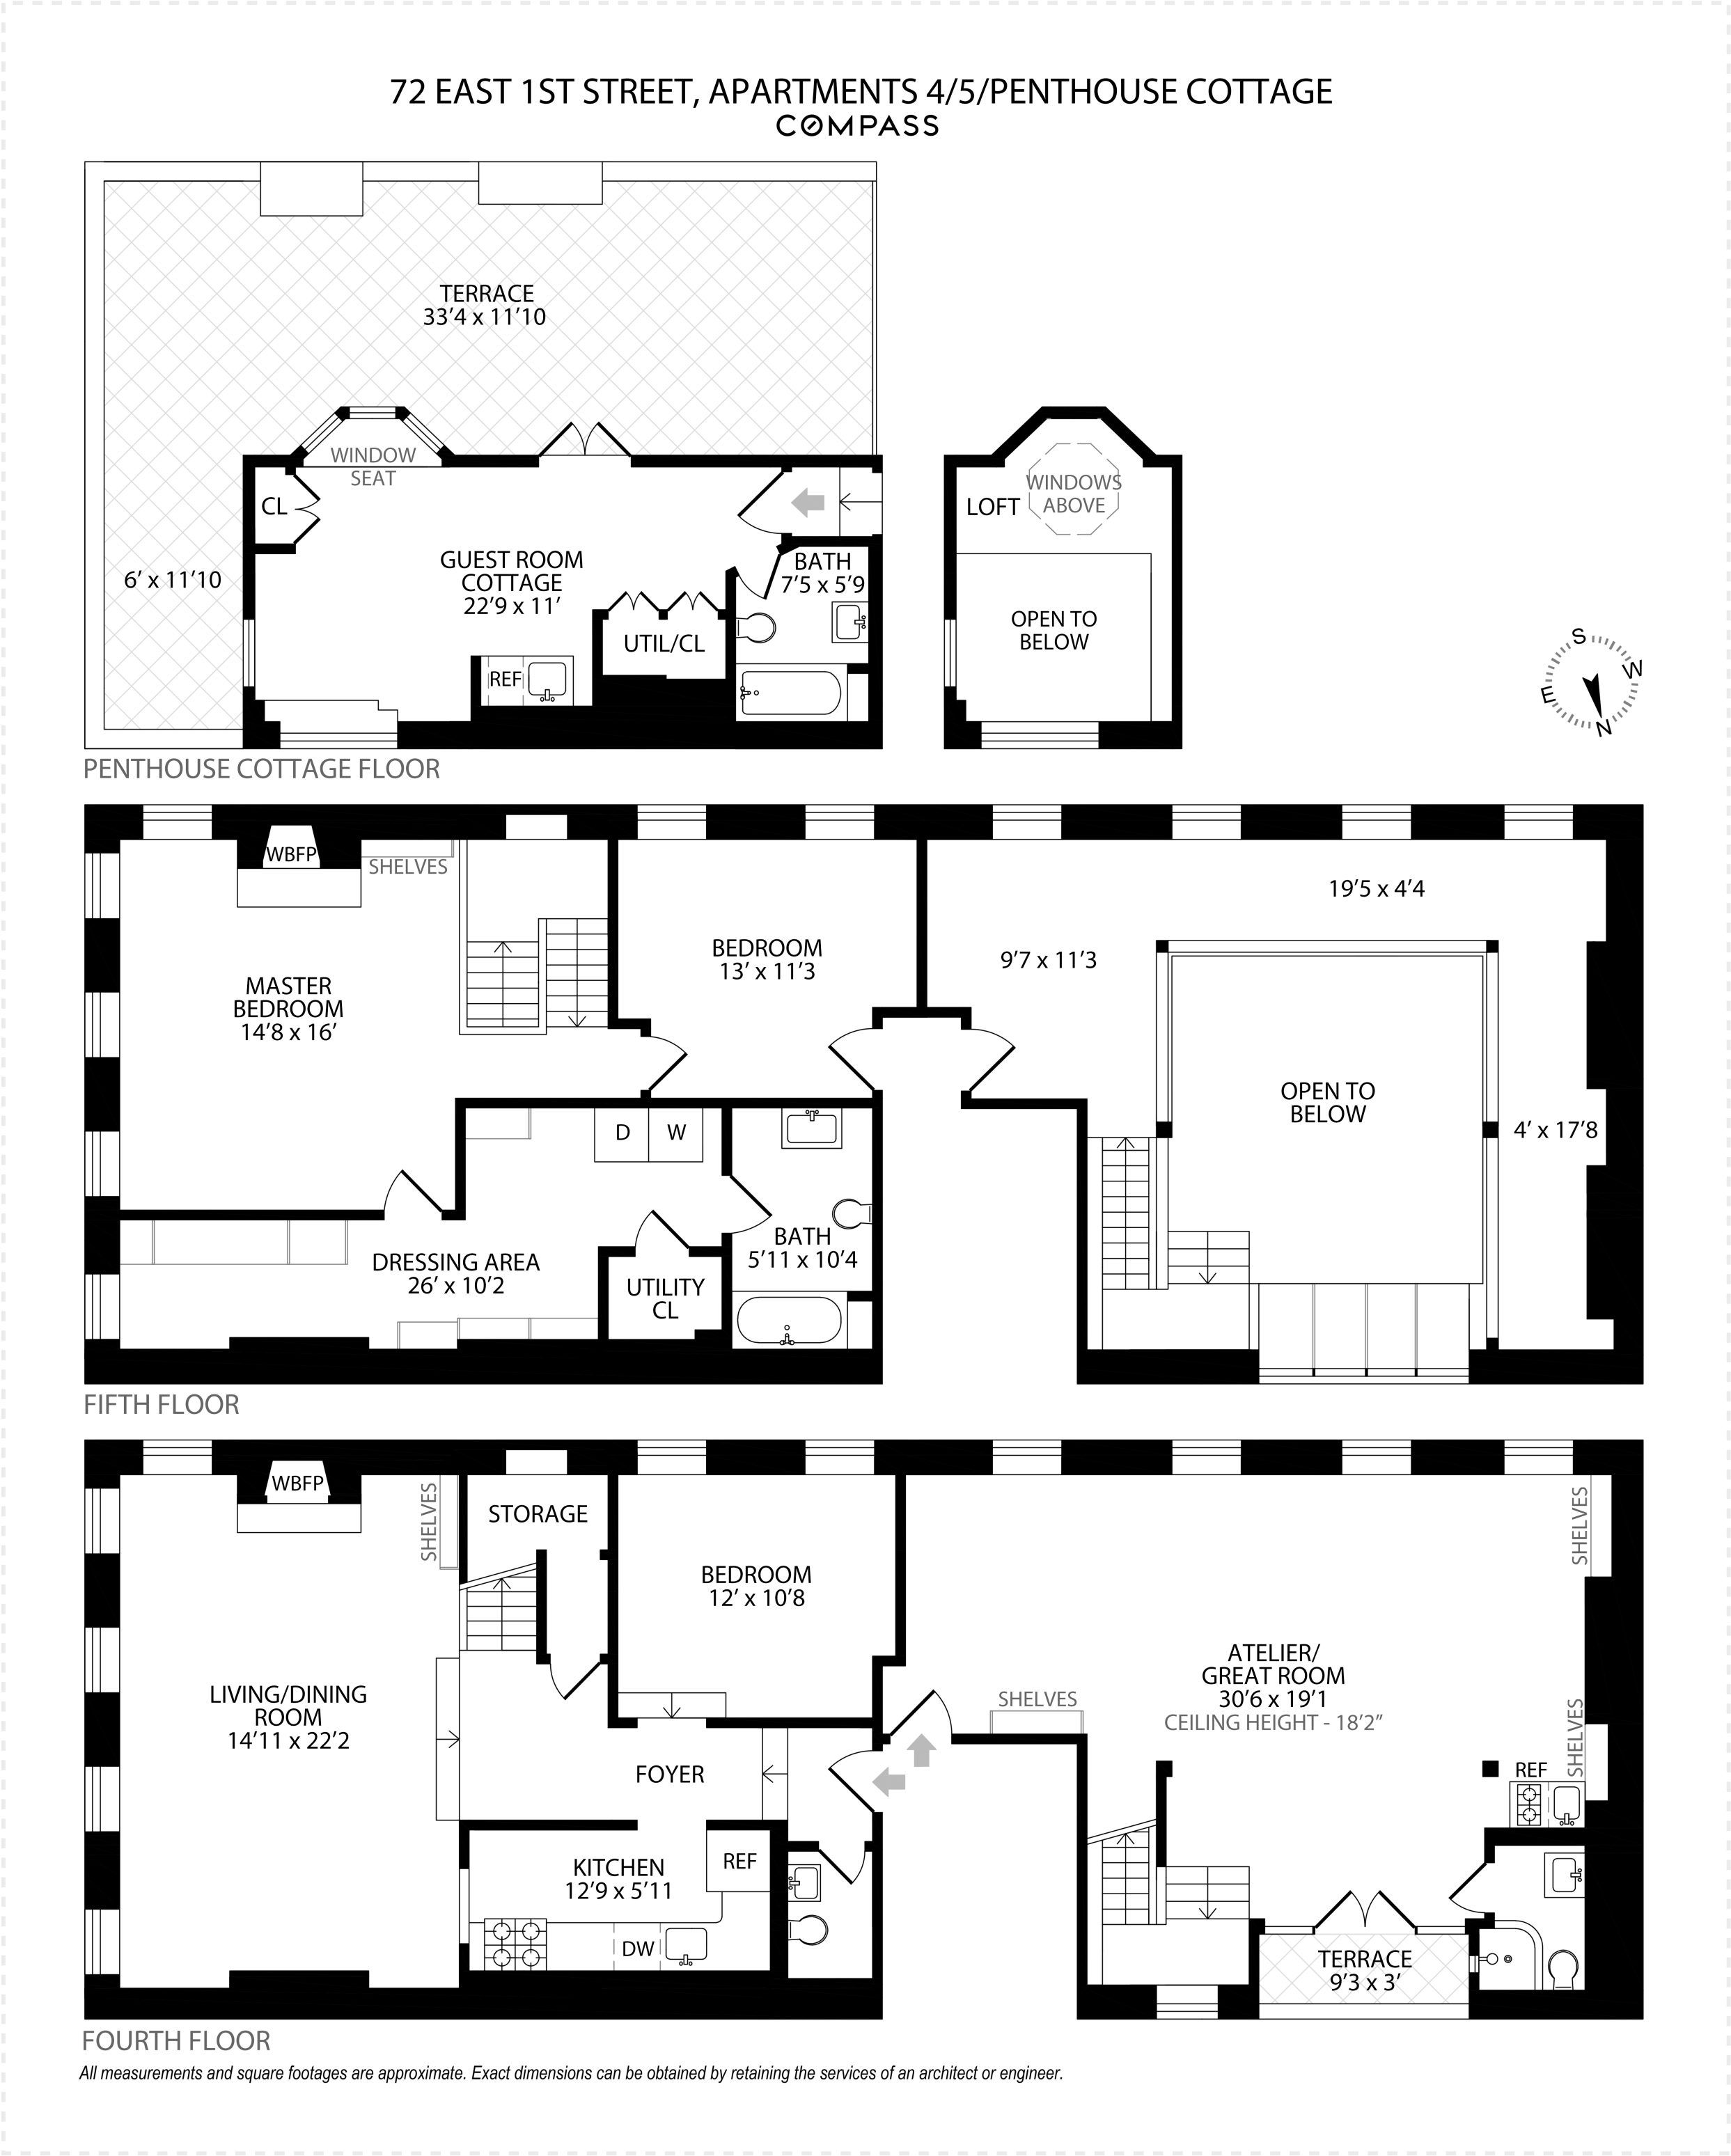 Pin By Susan Padilla On House Plans Apartment Floor Plans Nantucket Cottage Nyc Rooftop